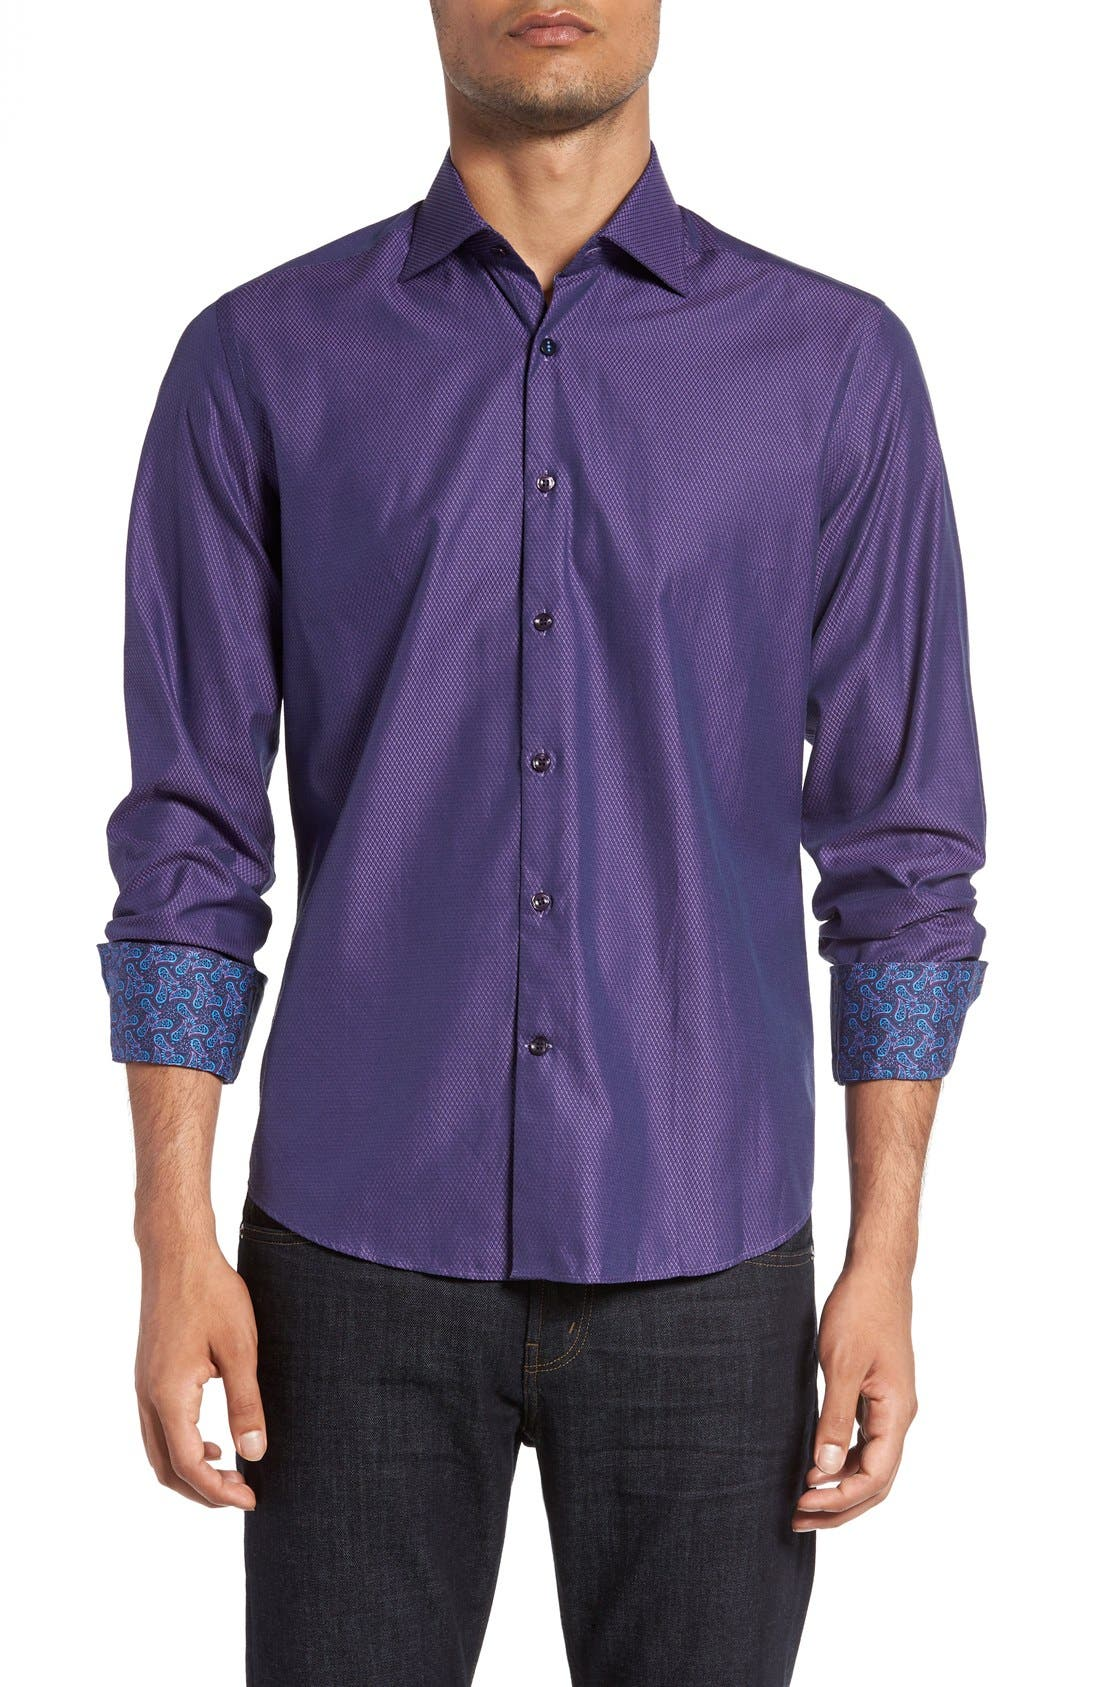 STONE ROSE Slim Fit Diamond Jacquard Sport Shirt